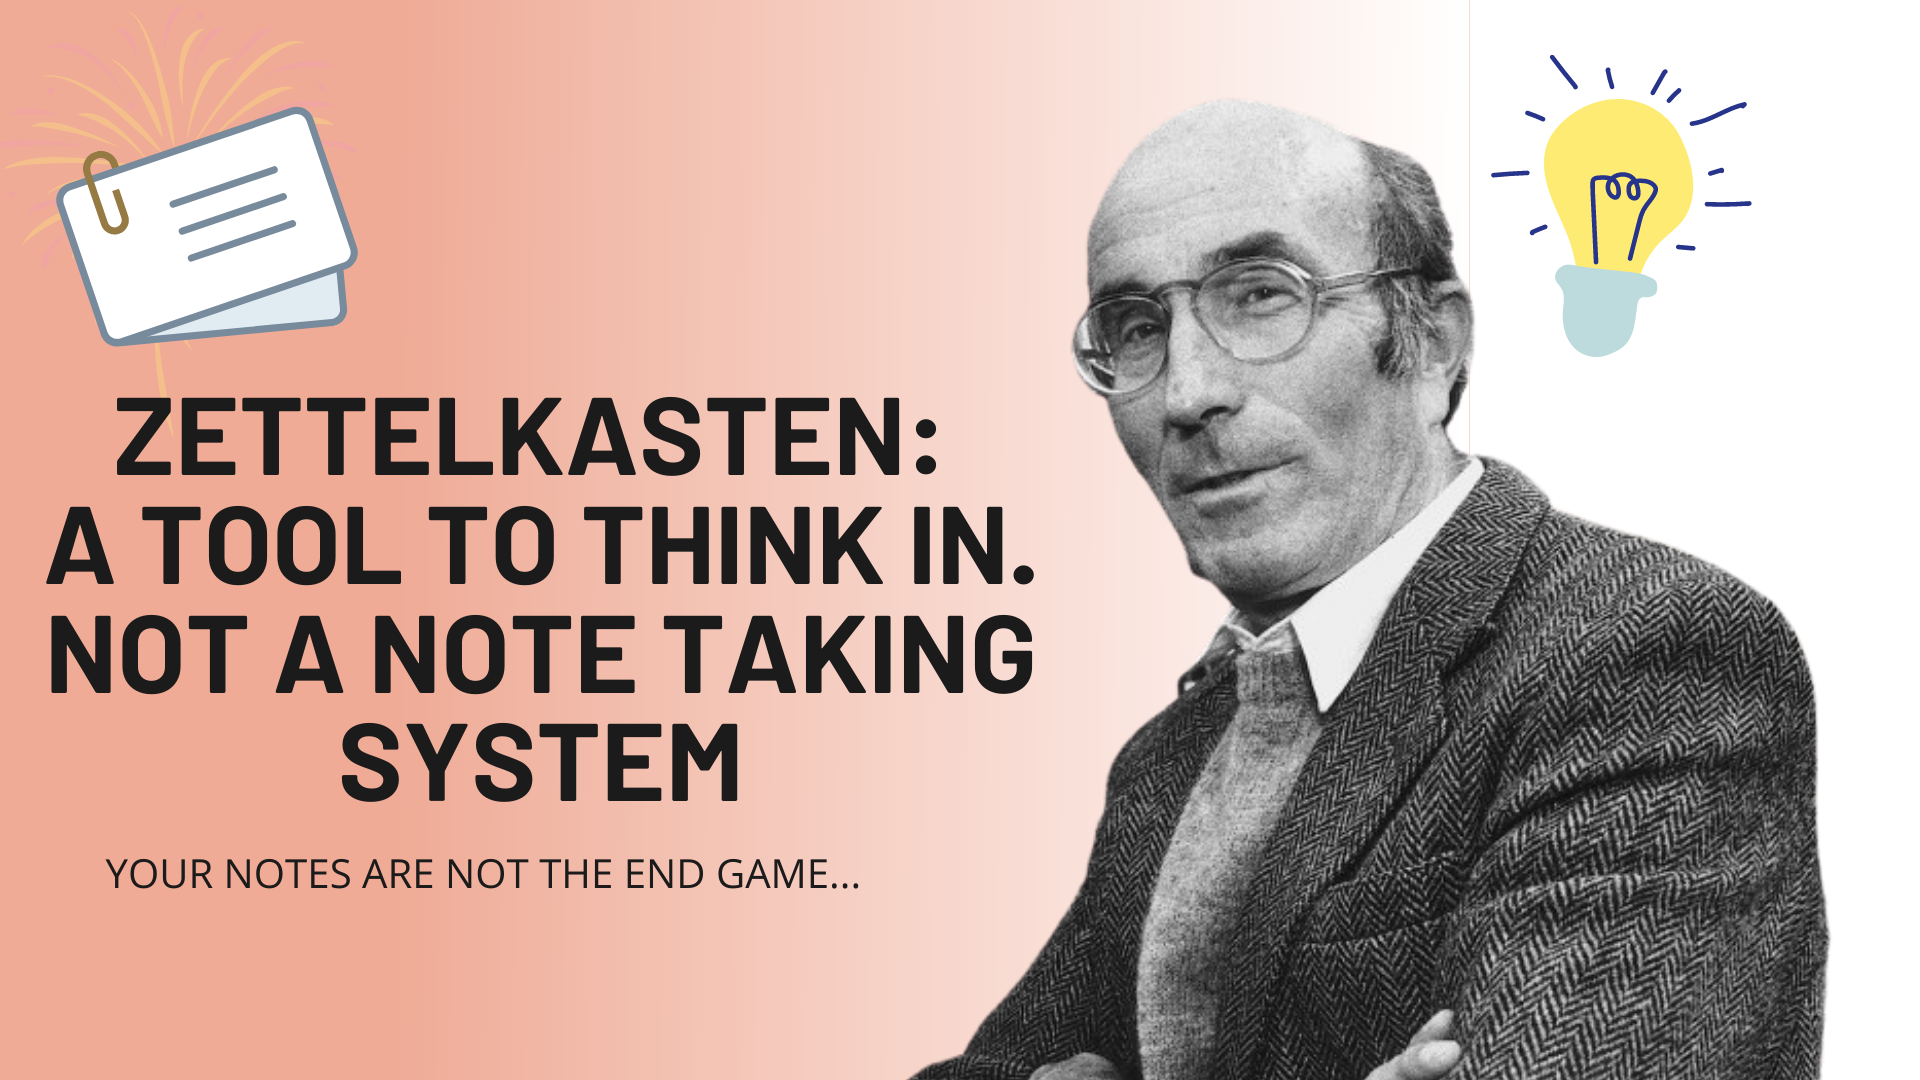 Zettelkasten: A Tool To Think In. Not A Note Taking System